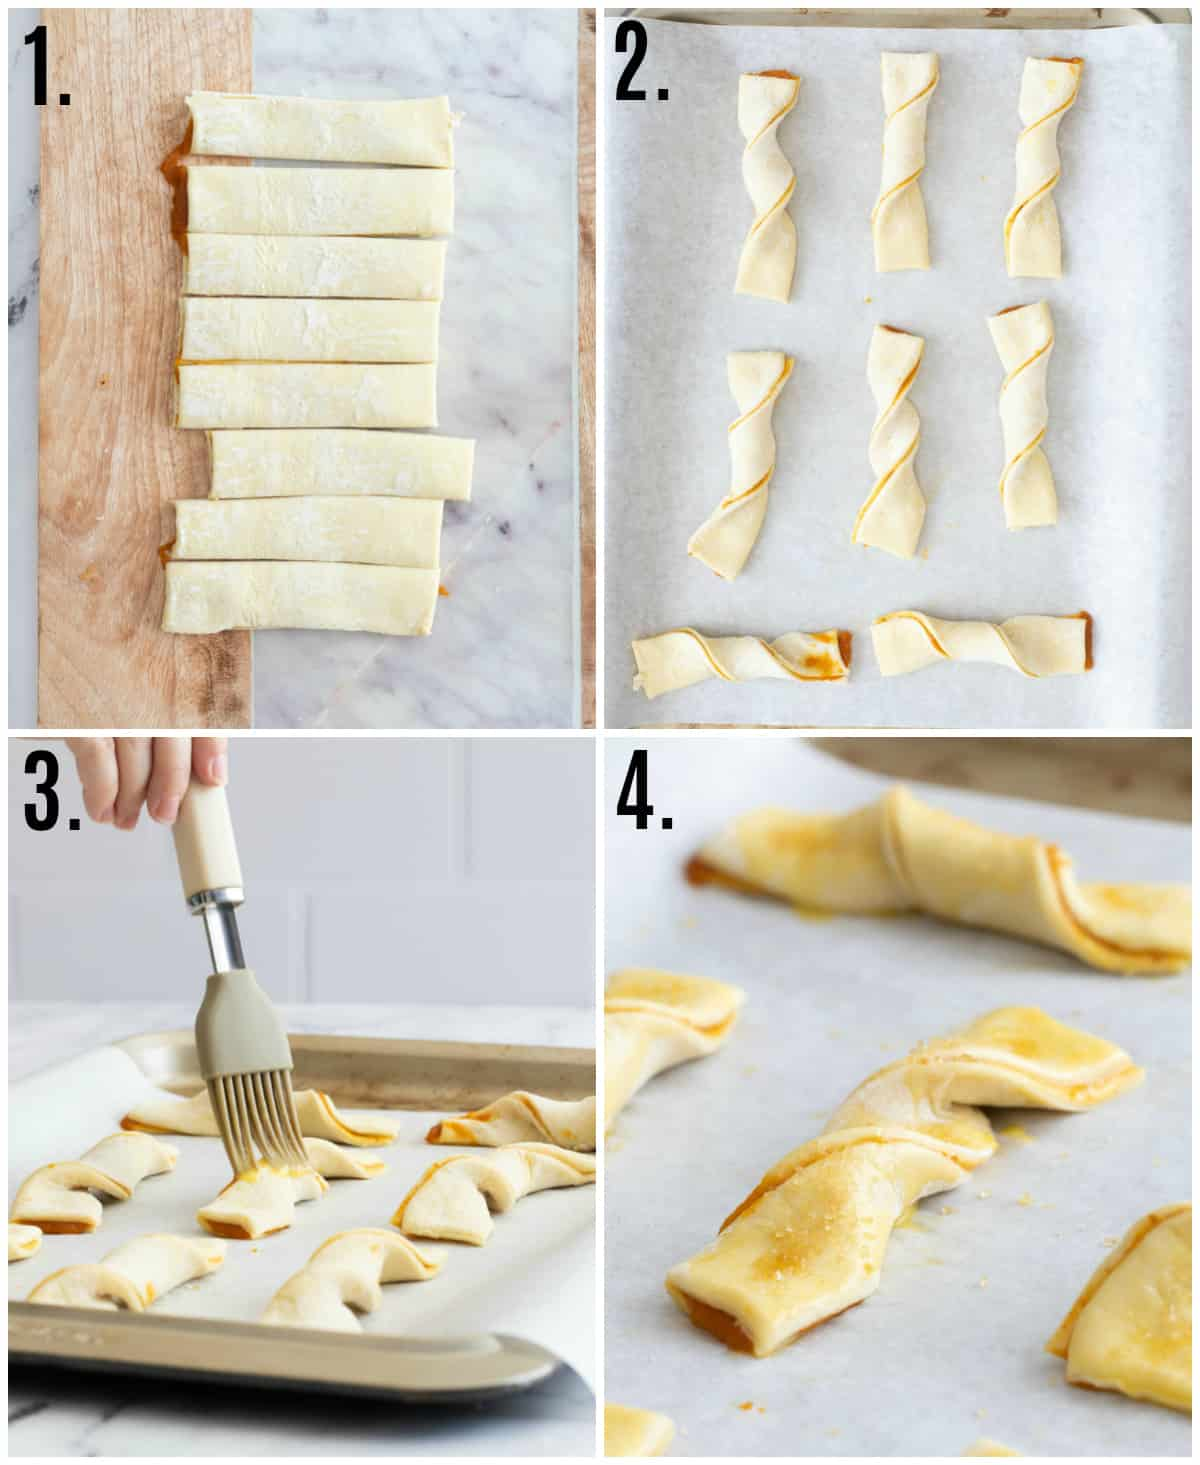 Step by step photos on how to make Puff Pastry Twists